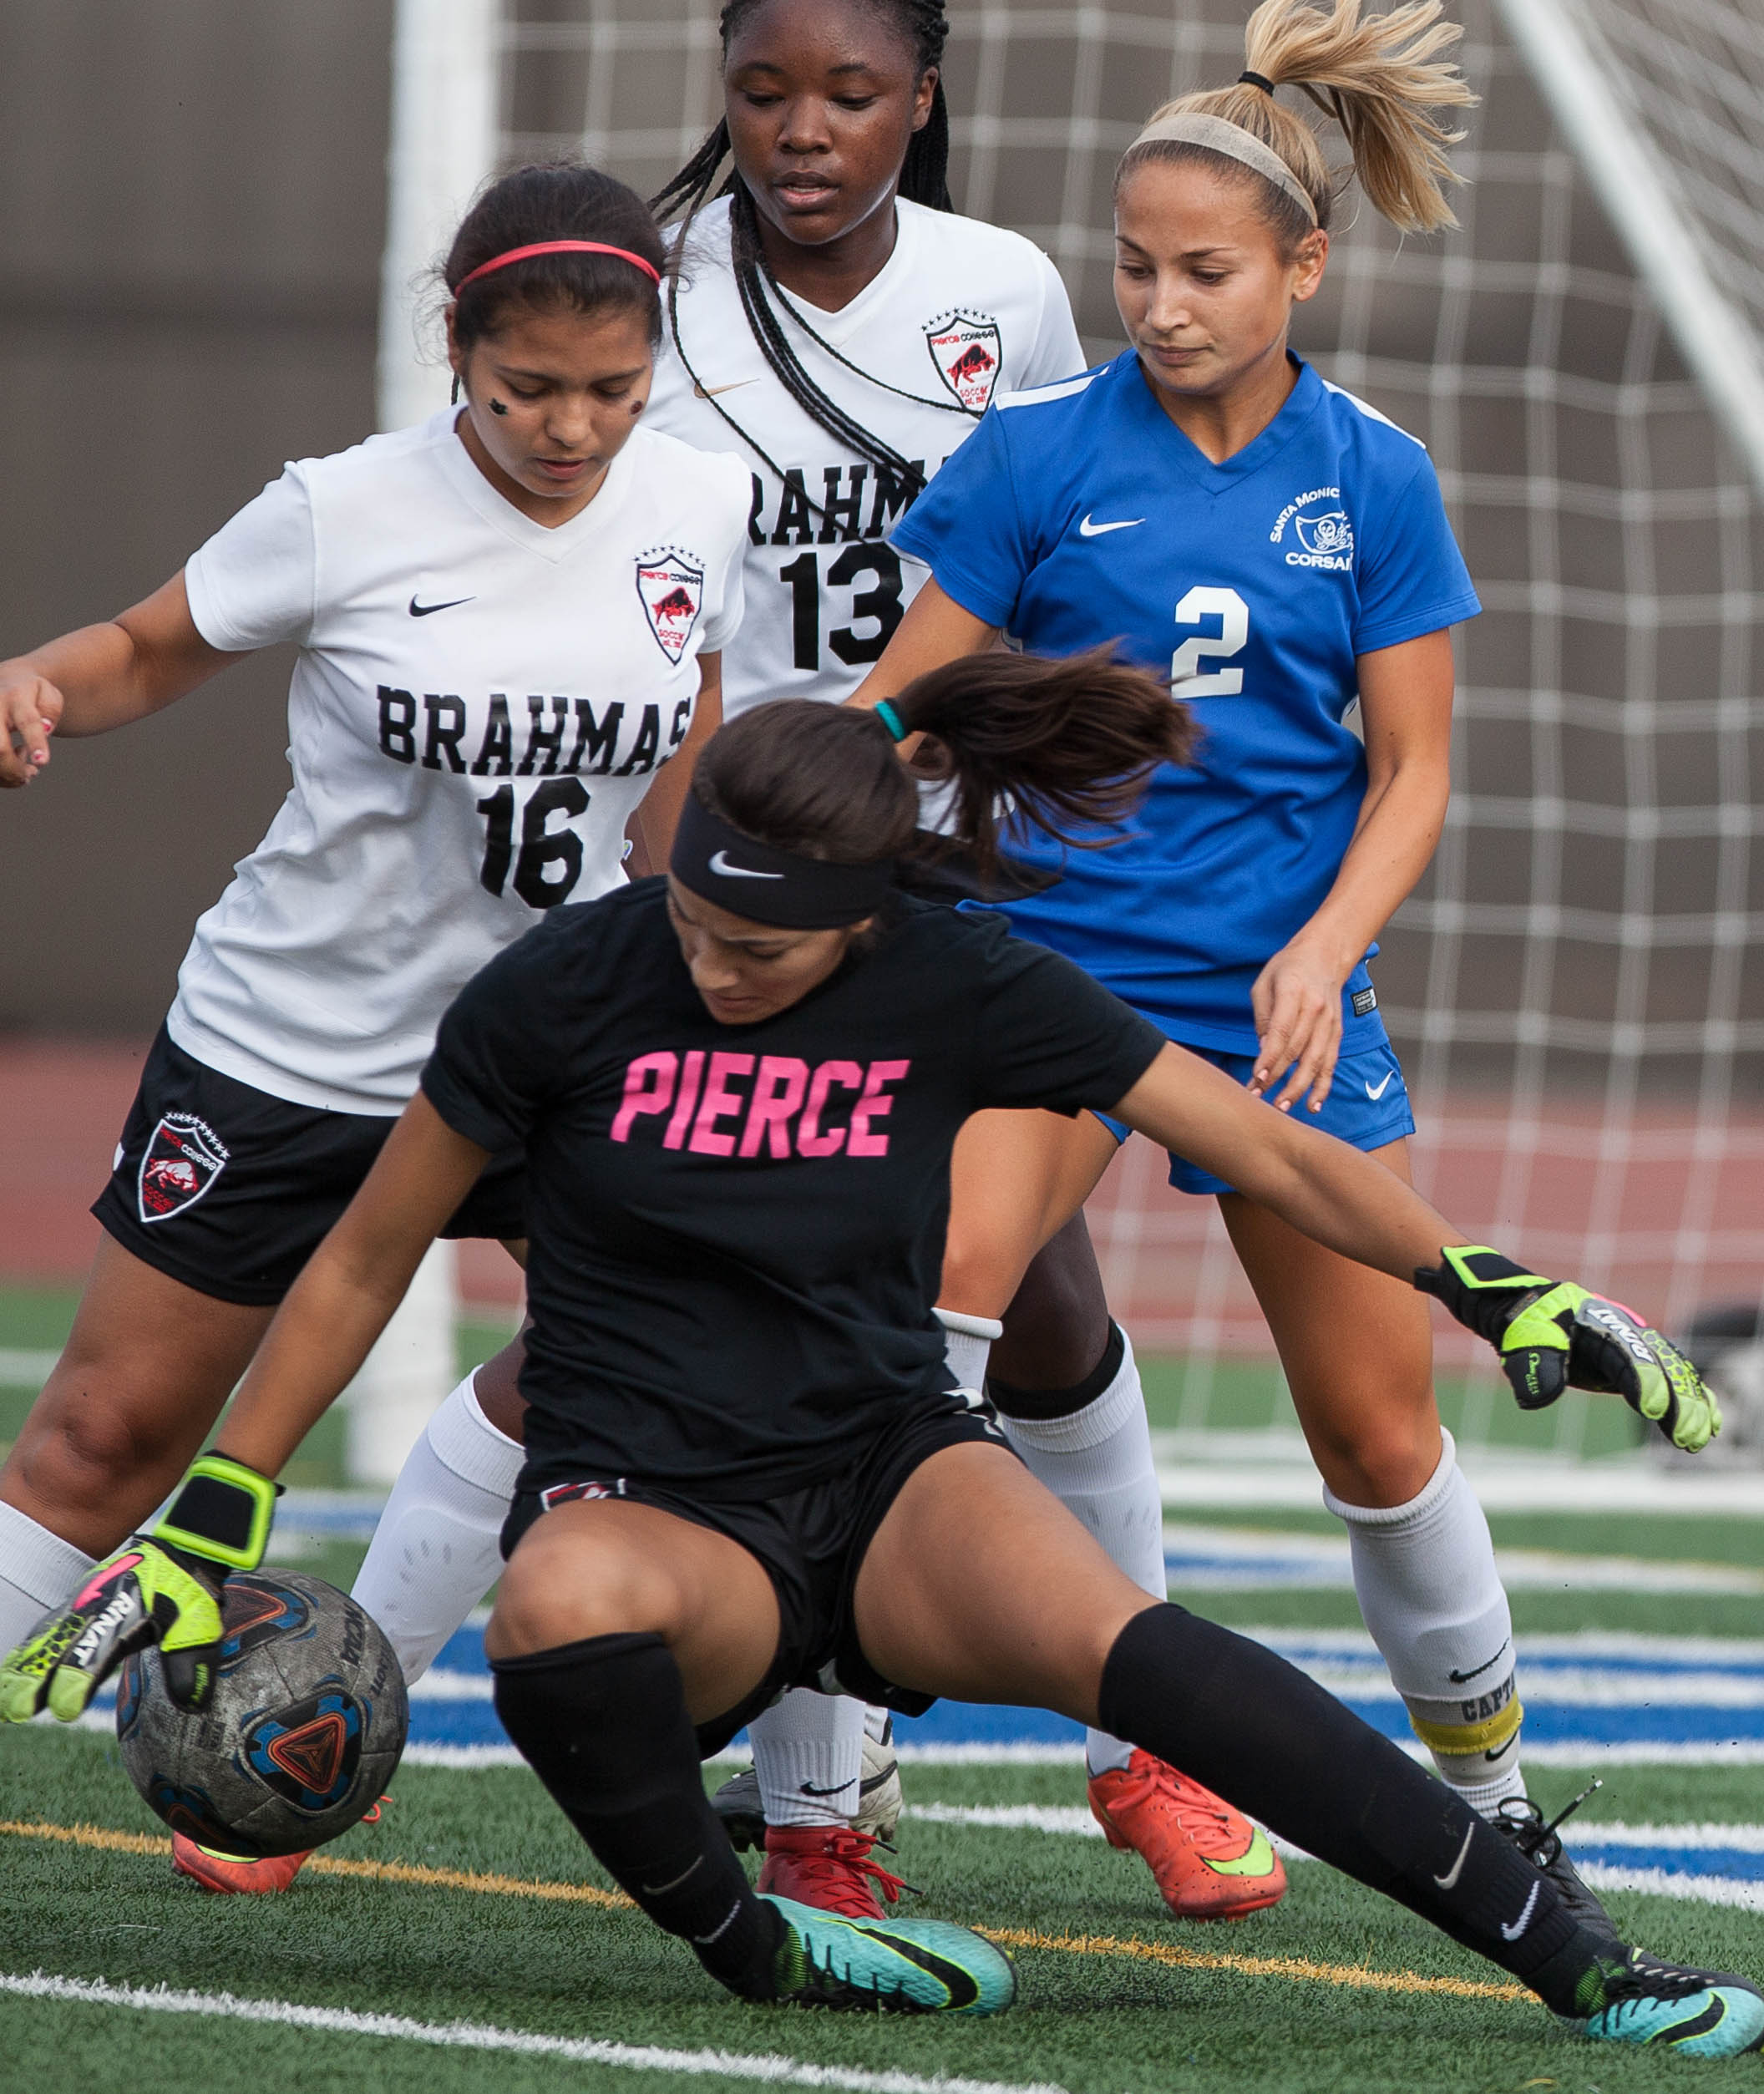 Pierce College Brahma Brianne Jacobo (1) intercepts the ball on the Corsair Field during the game against the Santa Monica College Corsairs at SMC on Tuesday, October 31, 2017 in Santa Monica, Calif. Corsairs win against the Brahmas 1-0 . (Elena Rybina)